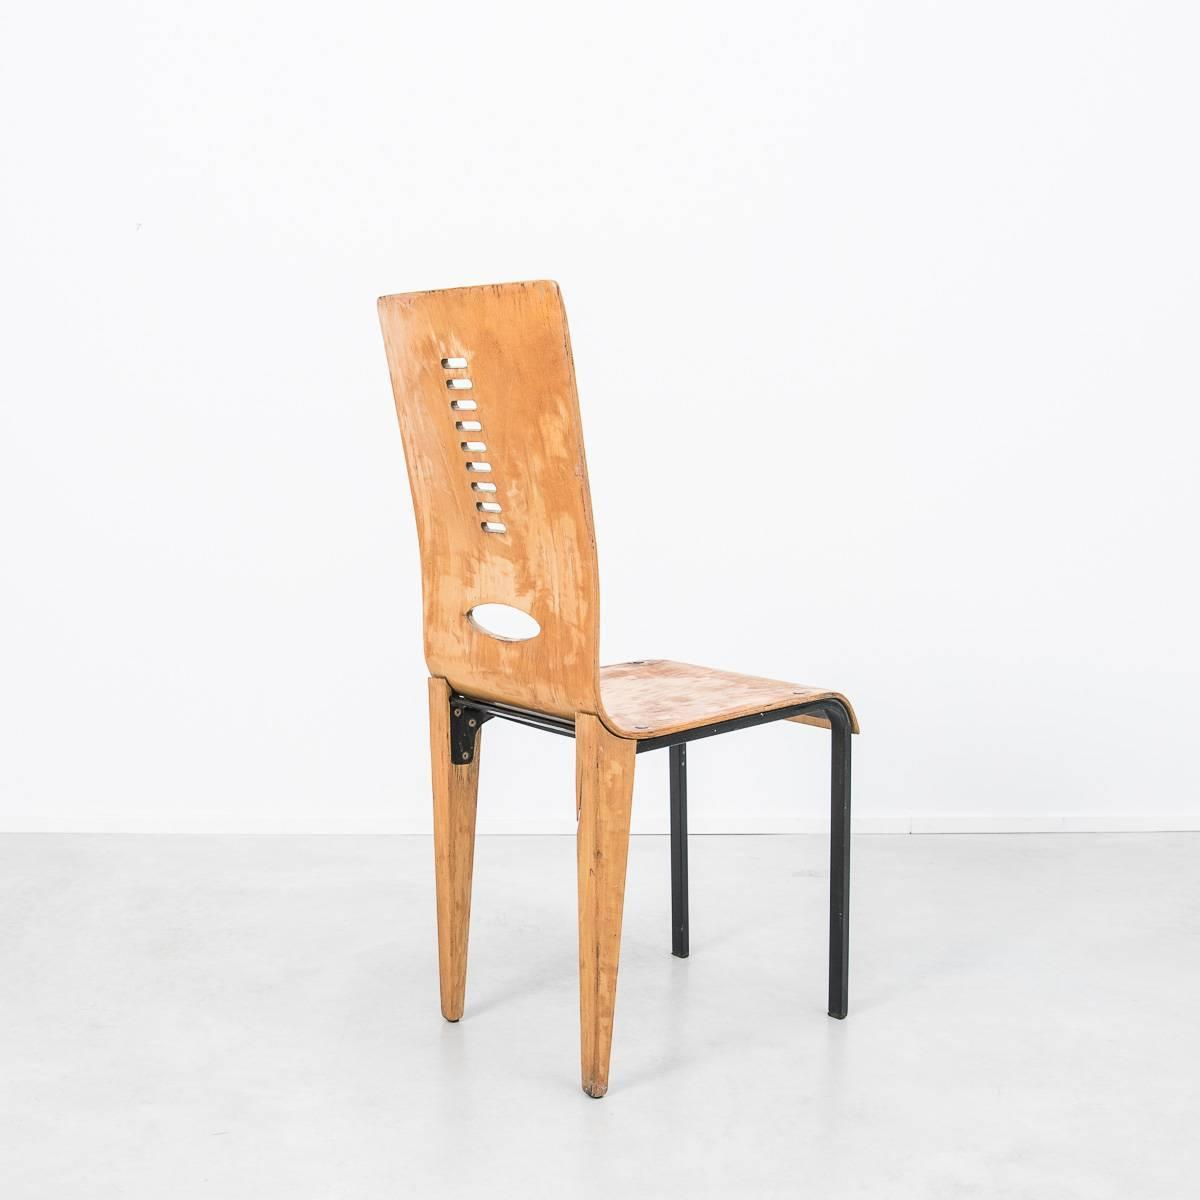 Early French Modernist Dining Chair In The Manner Of Jean Prouve For Sale At